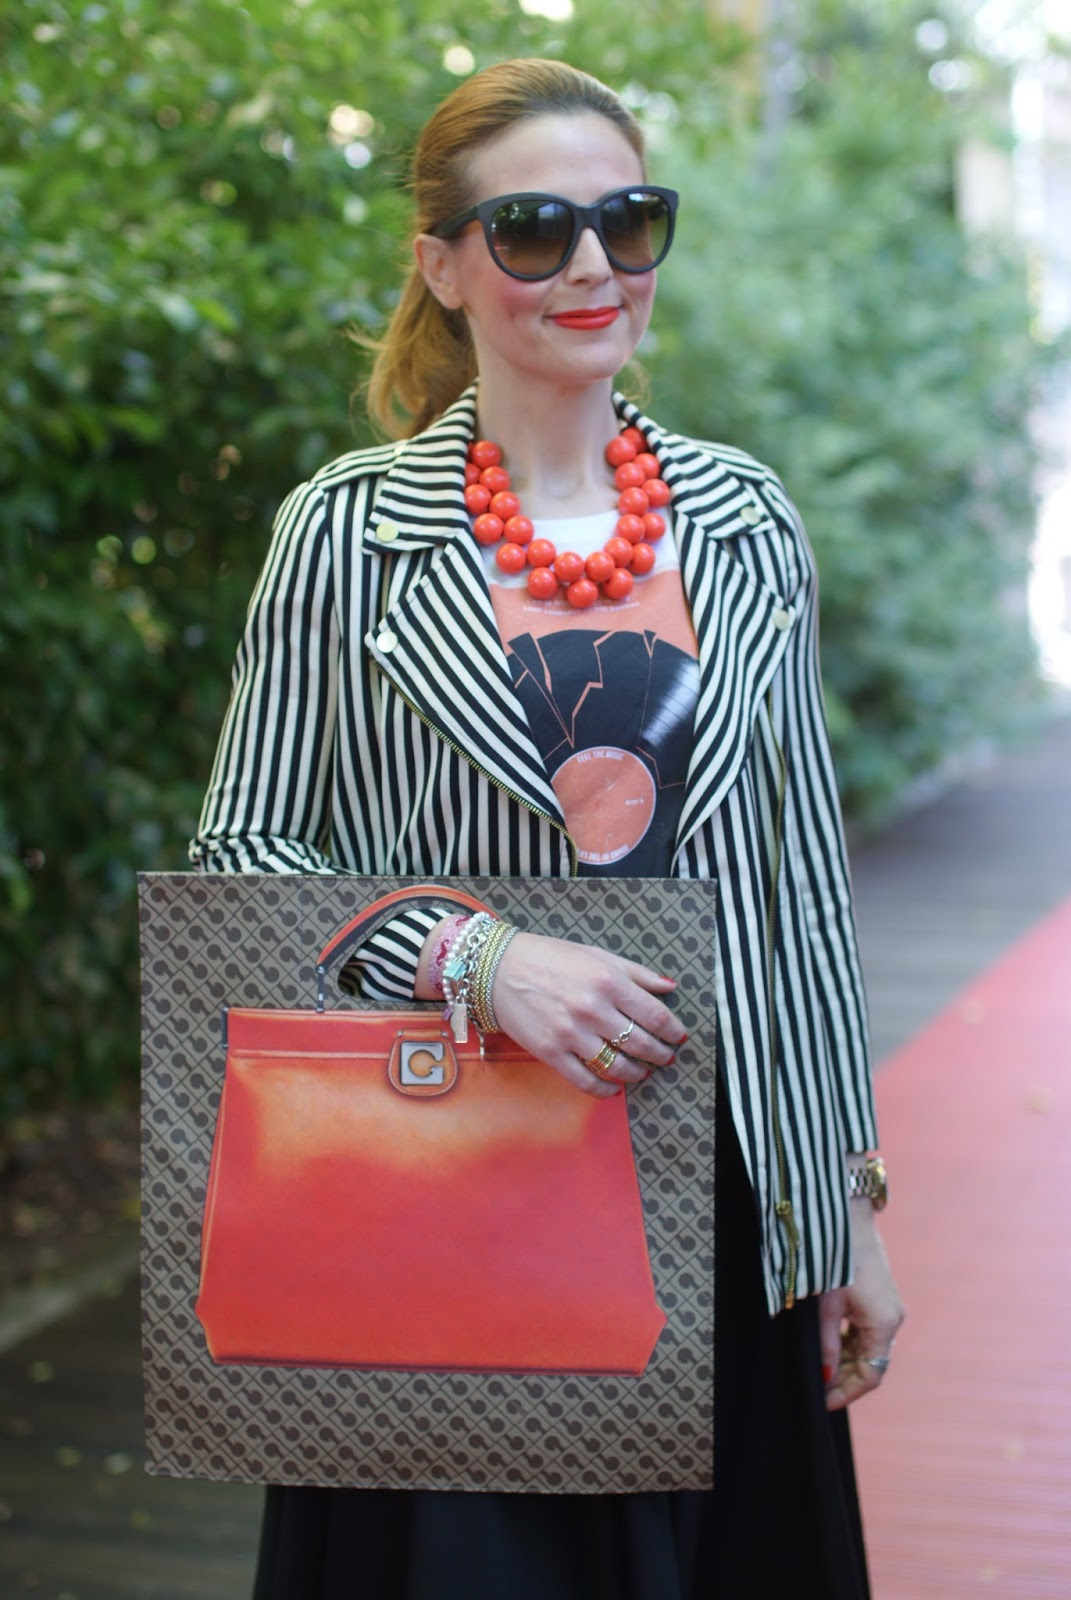 Gherardini bag, Gherardini piattina anniversary 130, striped Zara jacket, Fashion and Cookies fashion blog, fashion blogger